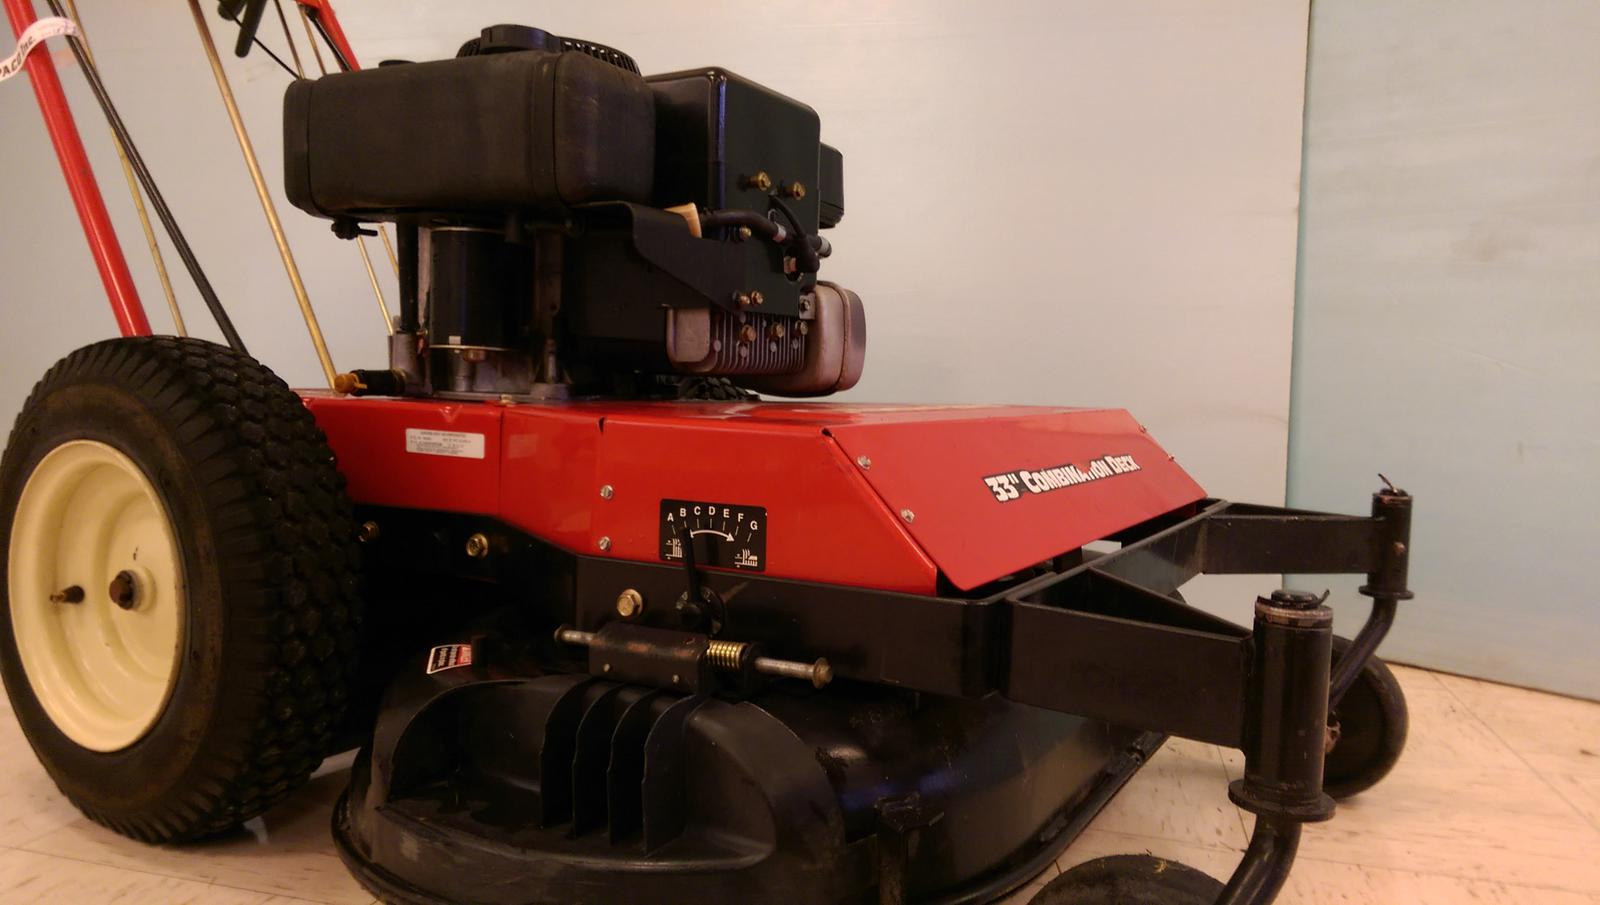 Troy-Bilt 34343 for sale in Logan, UT | Ipaco Incorporated (435) 753-1942